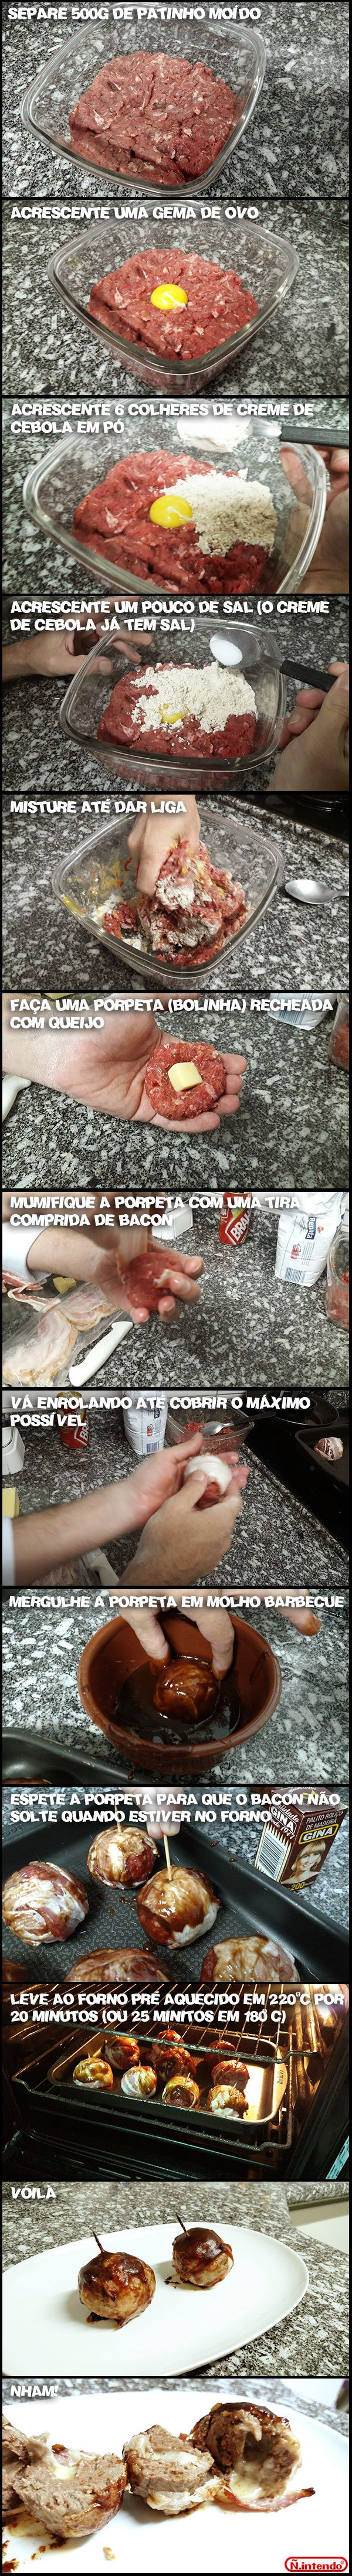 Porpetas mumificadas no bacon